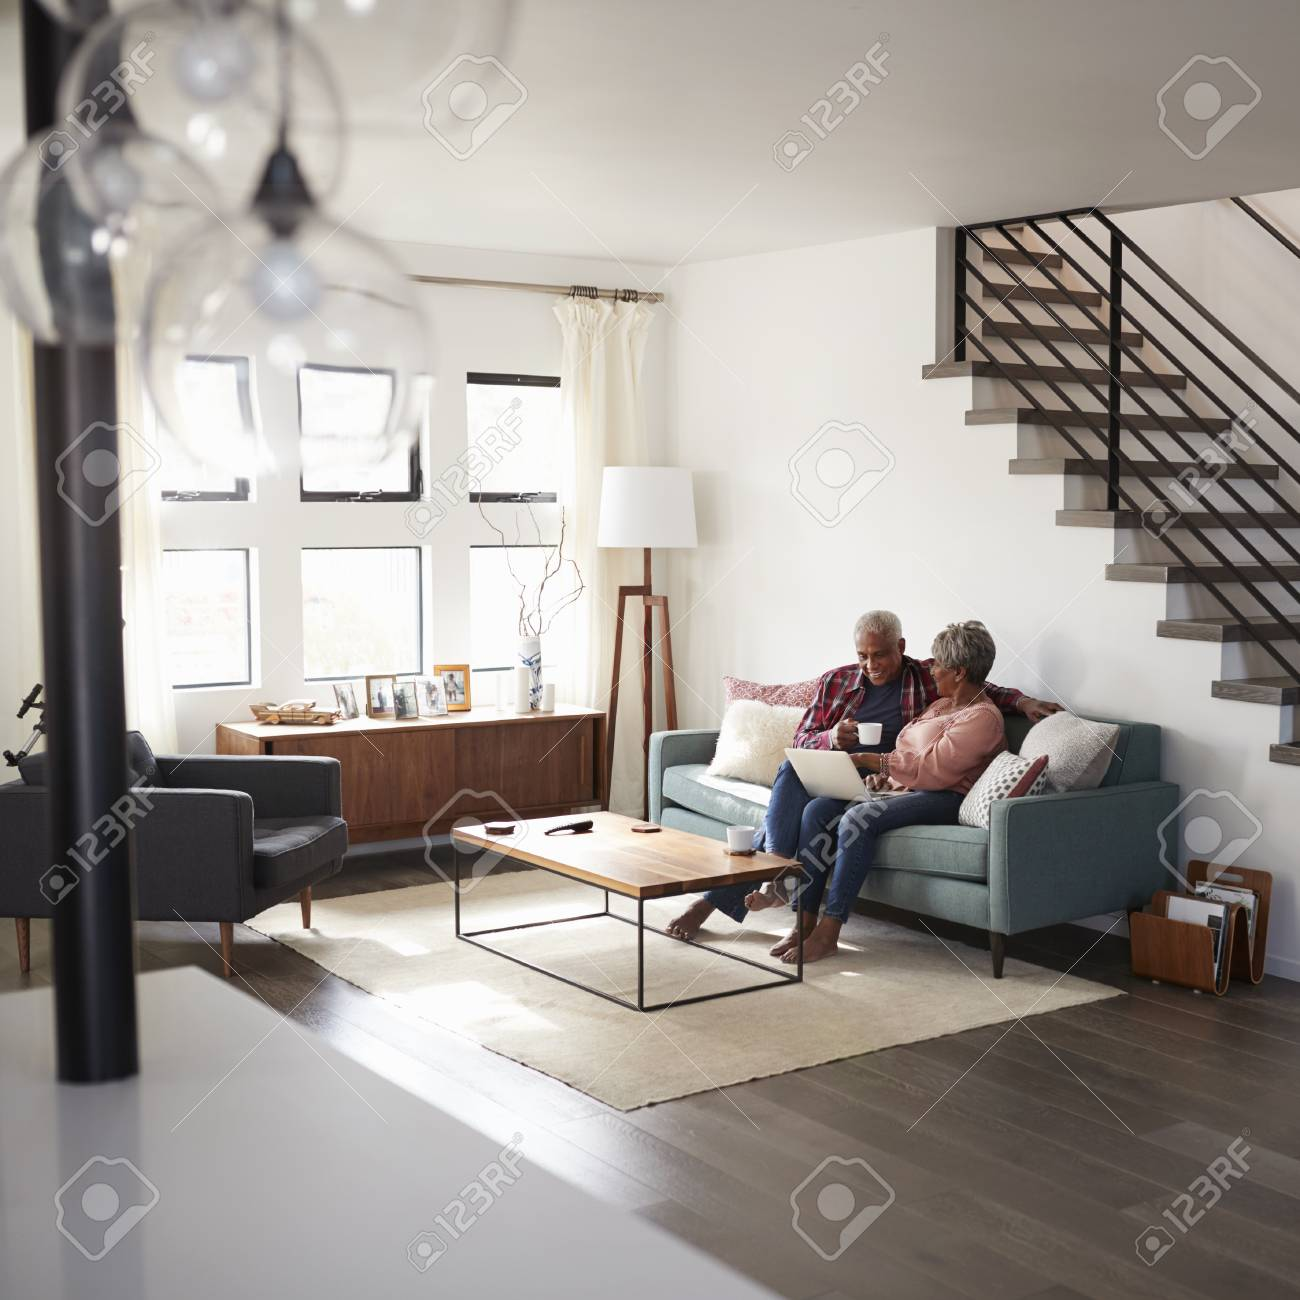 Sofa Online Shop Senior Couple Sitting On Sofa At Home Using Laptop To Shop Online